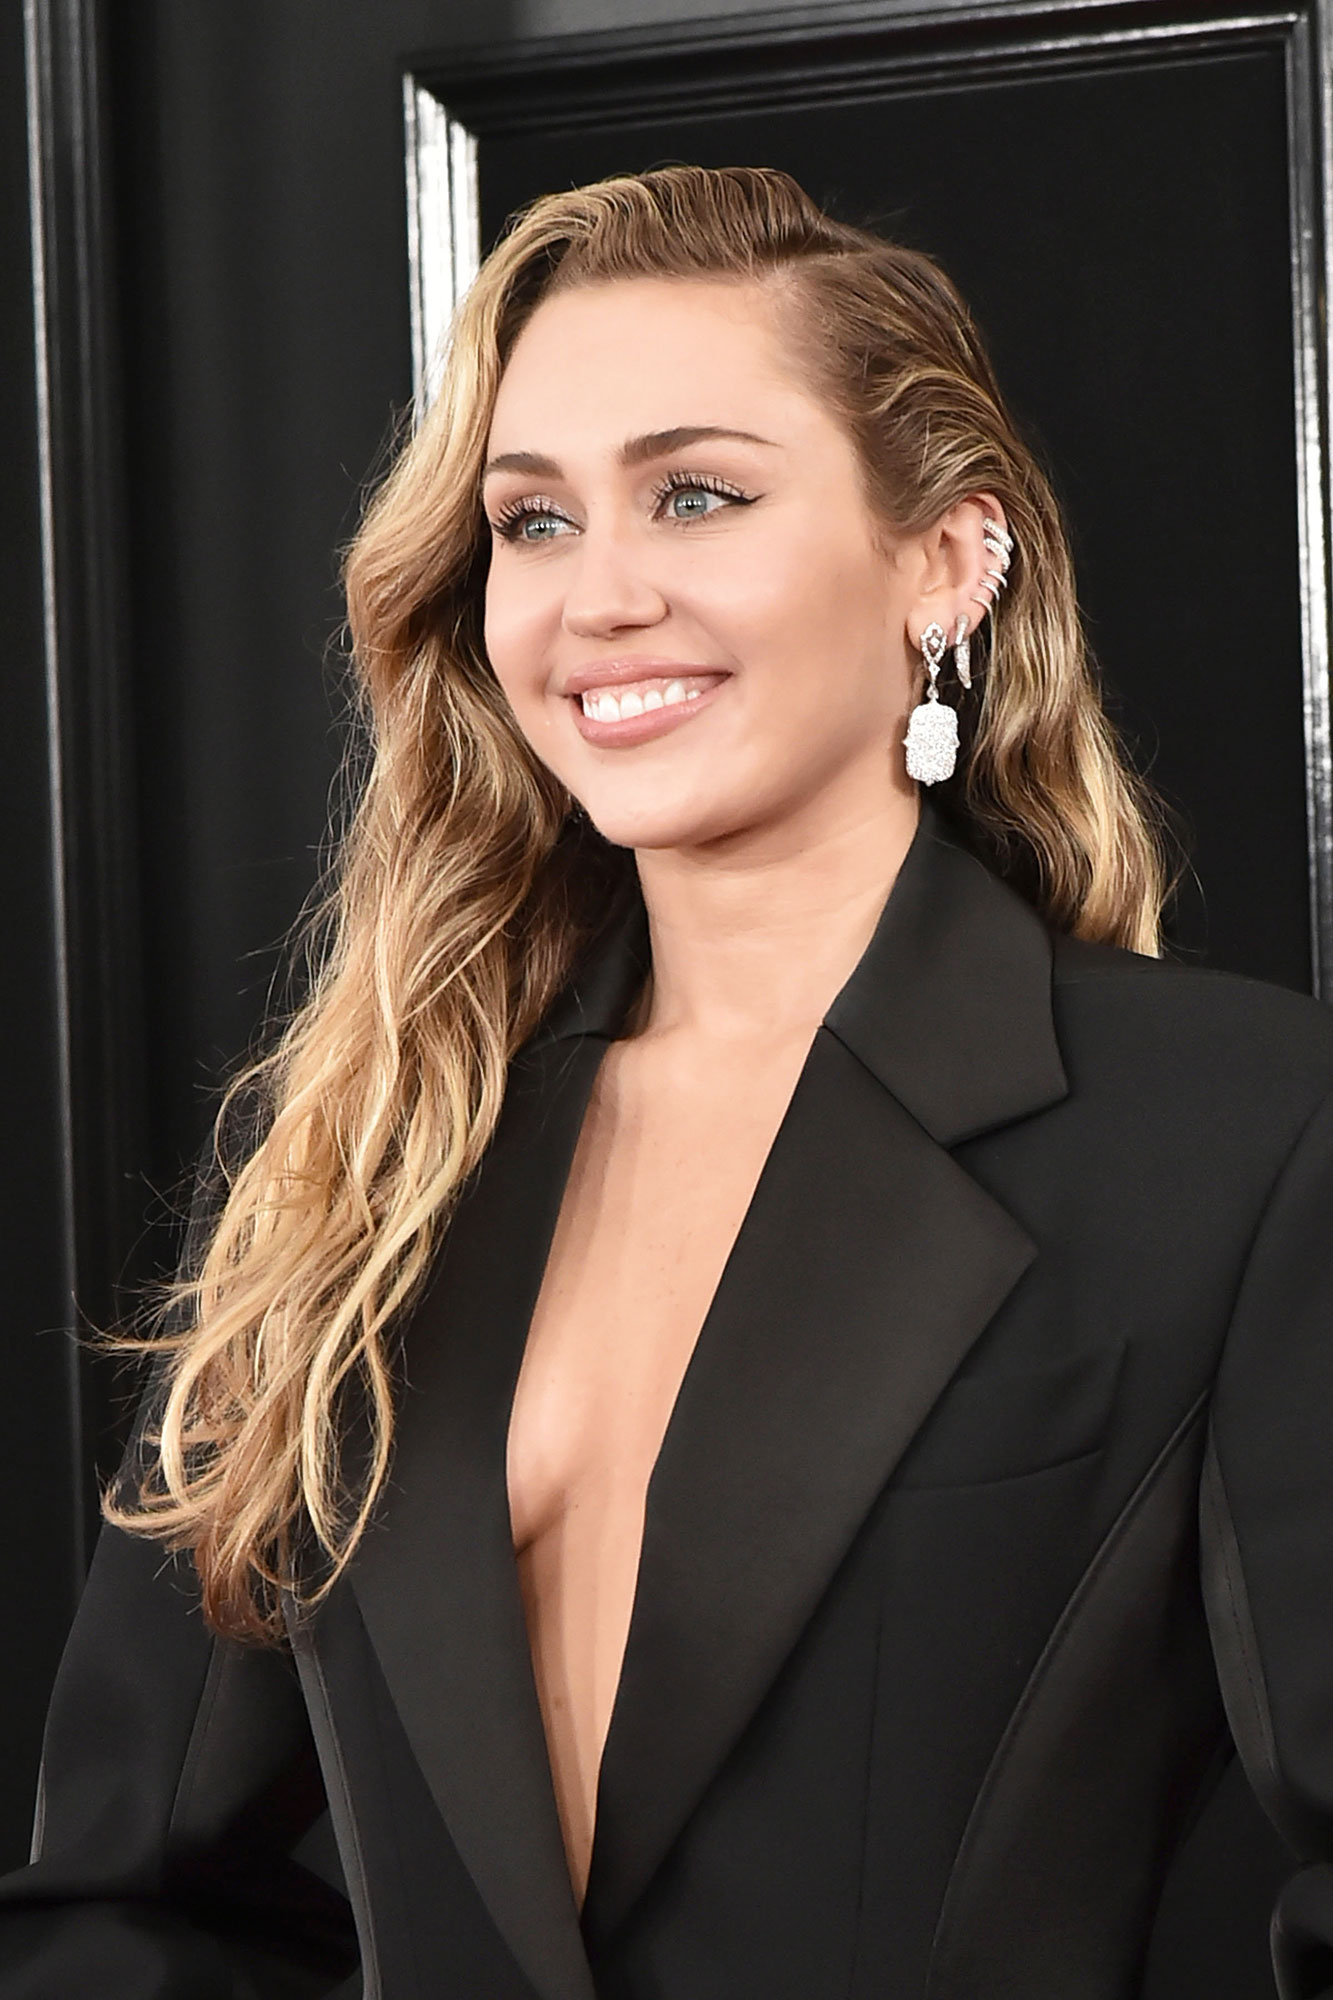 grammys 2019 Miley Cyrus - The Grammys performer tucked her hair behind her ears to show off her five silver hoops cupped and a big sparkly drop earring from Loree Rodkin.